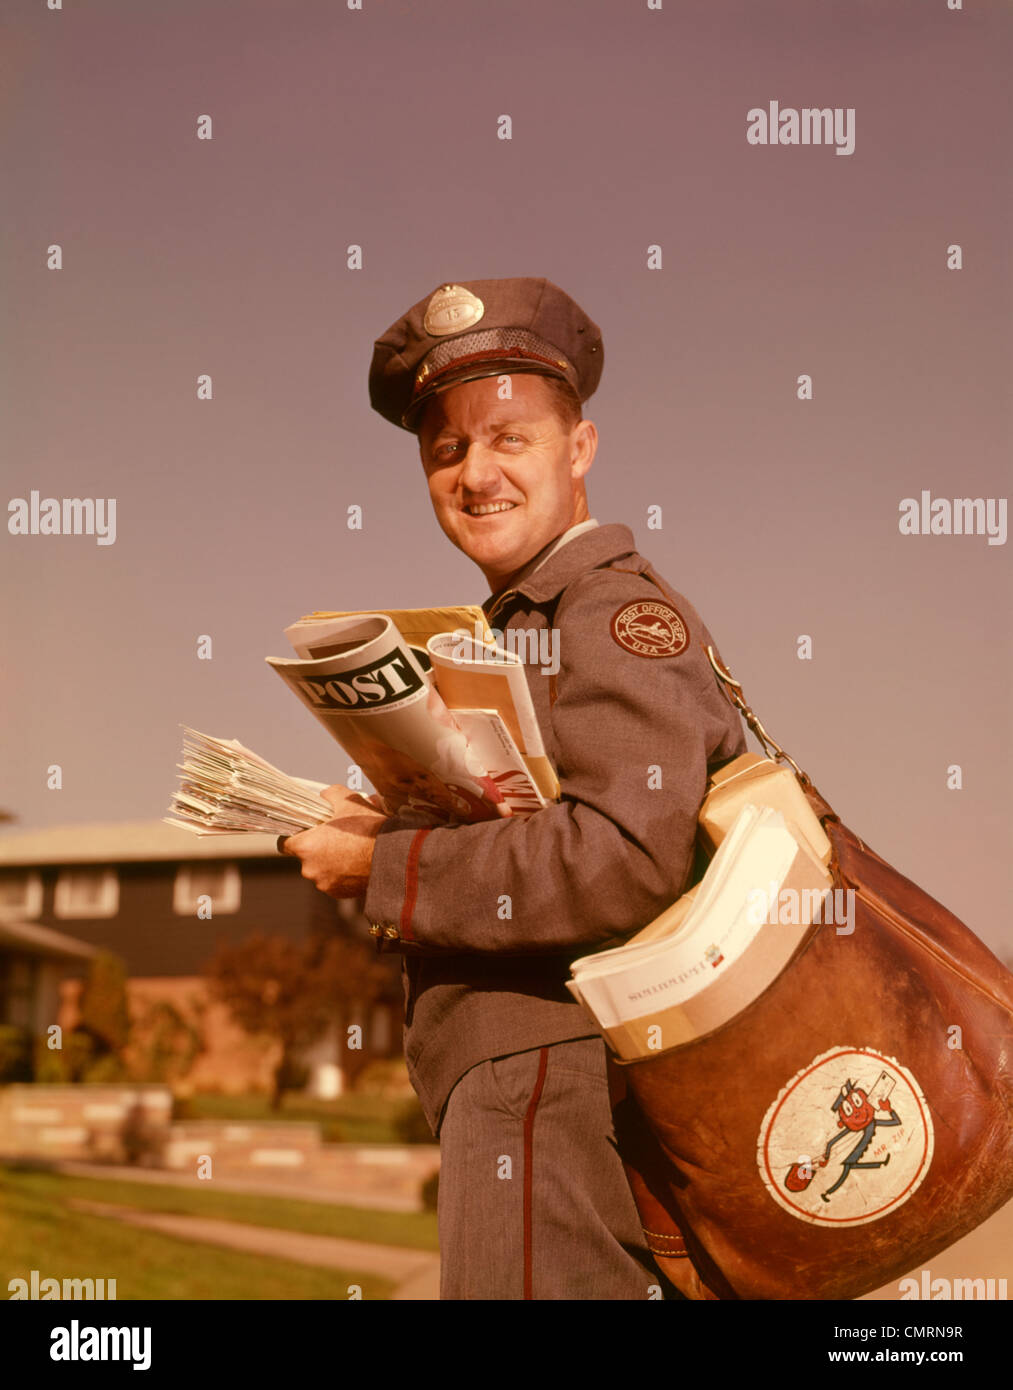 1960 1960s SMILING MAILMAN HOLDING MAIL MAILBAG LETTERS